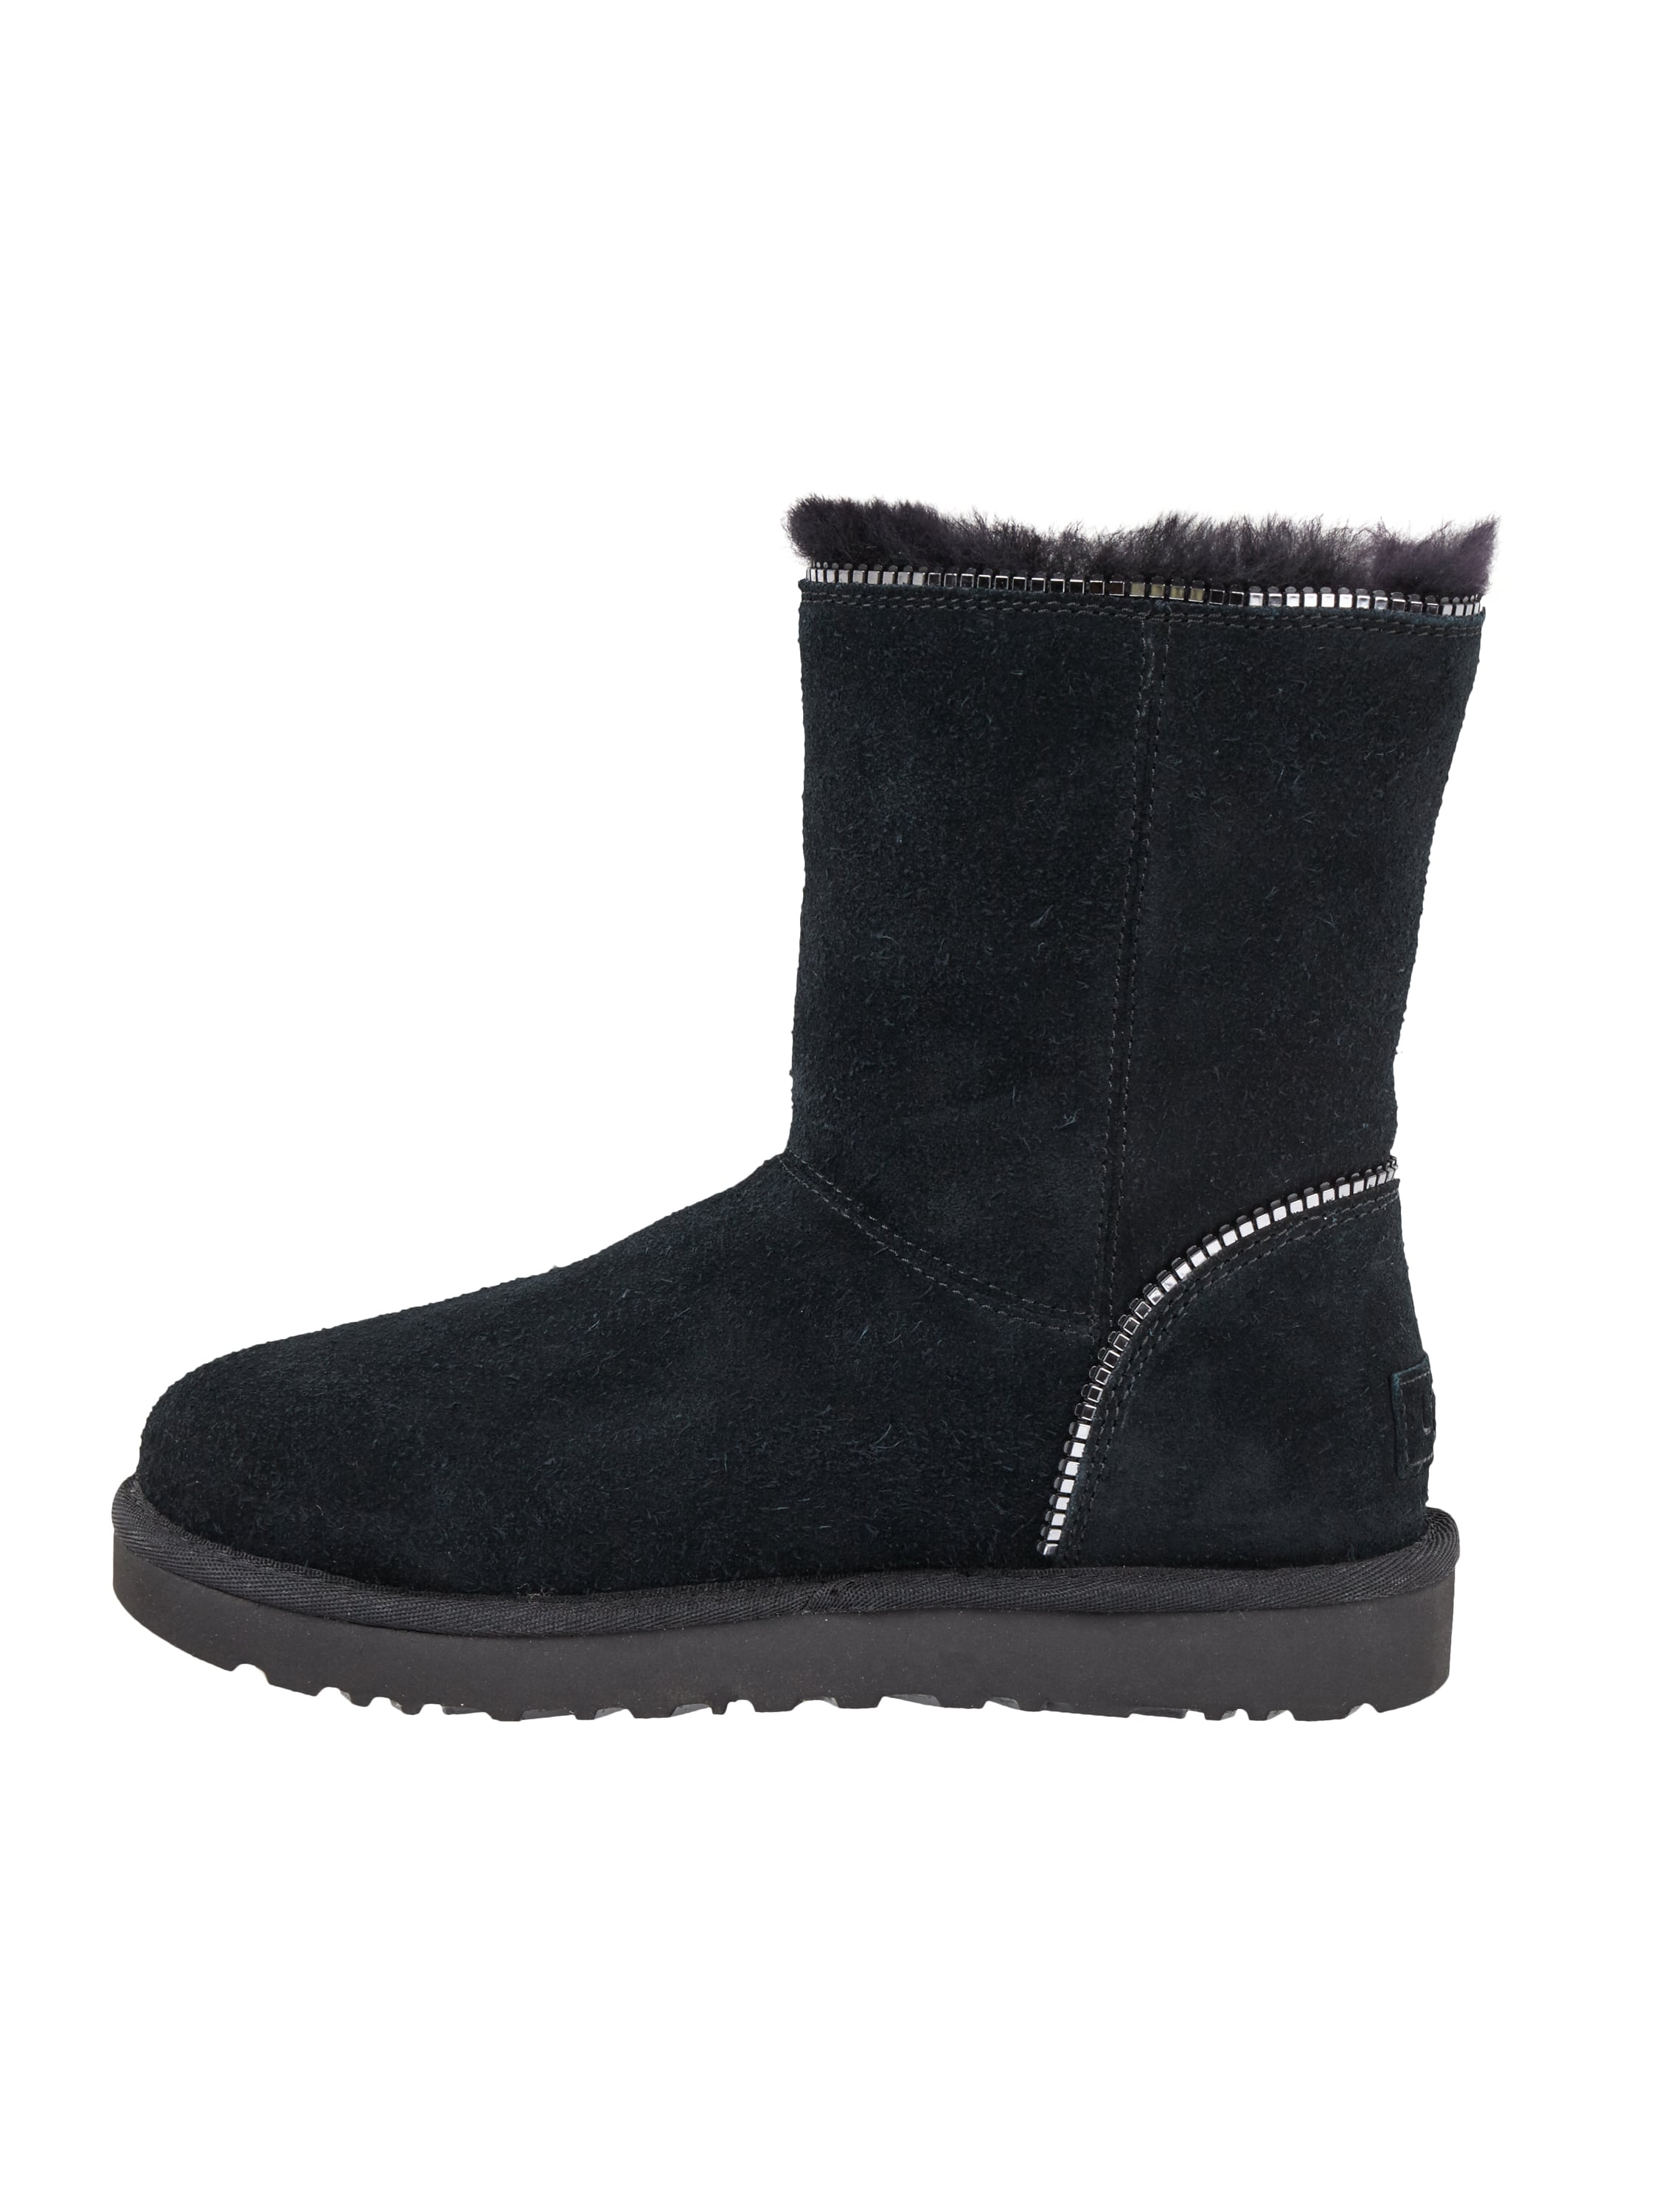 ugg australia boots aus veloursleder wasserdicht in grau schwarz online kaufen 9522631 p. Black Bedroom Furniture Sets. Home Design Ideas